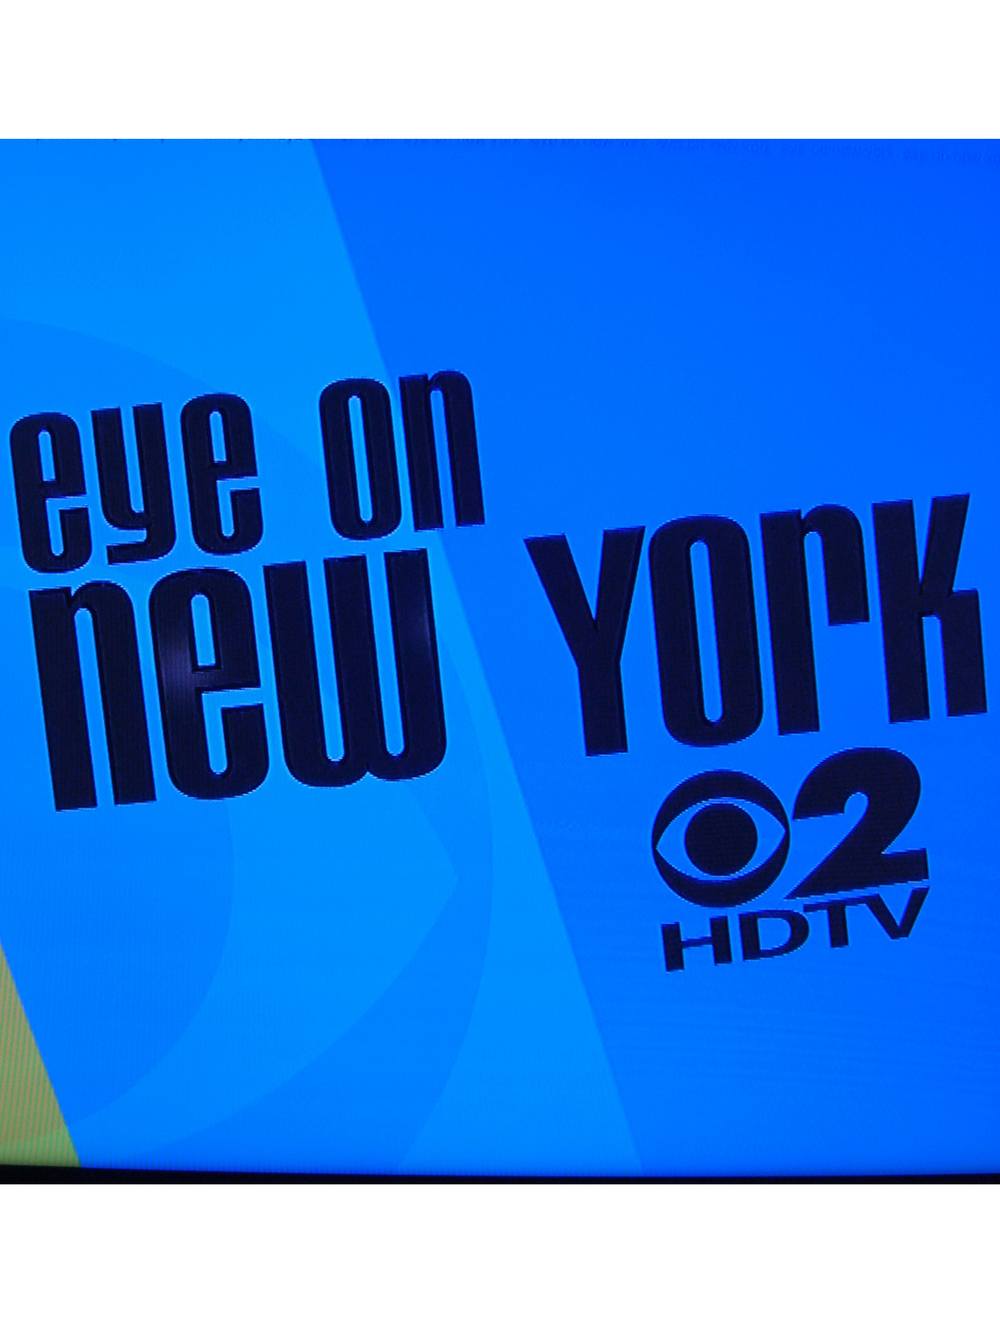 CBS: Eye On New York, July 7, 2009